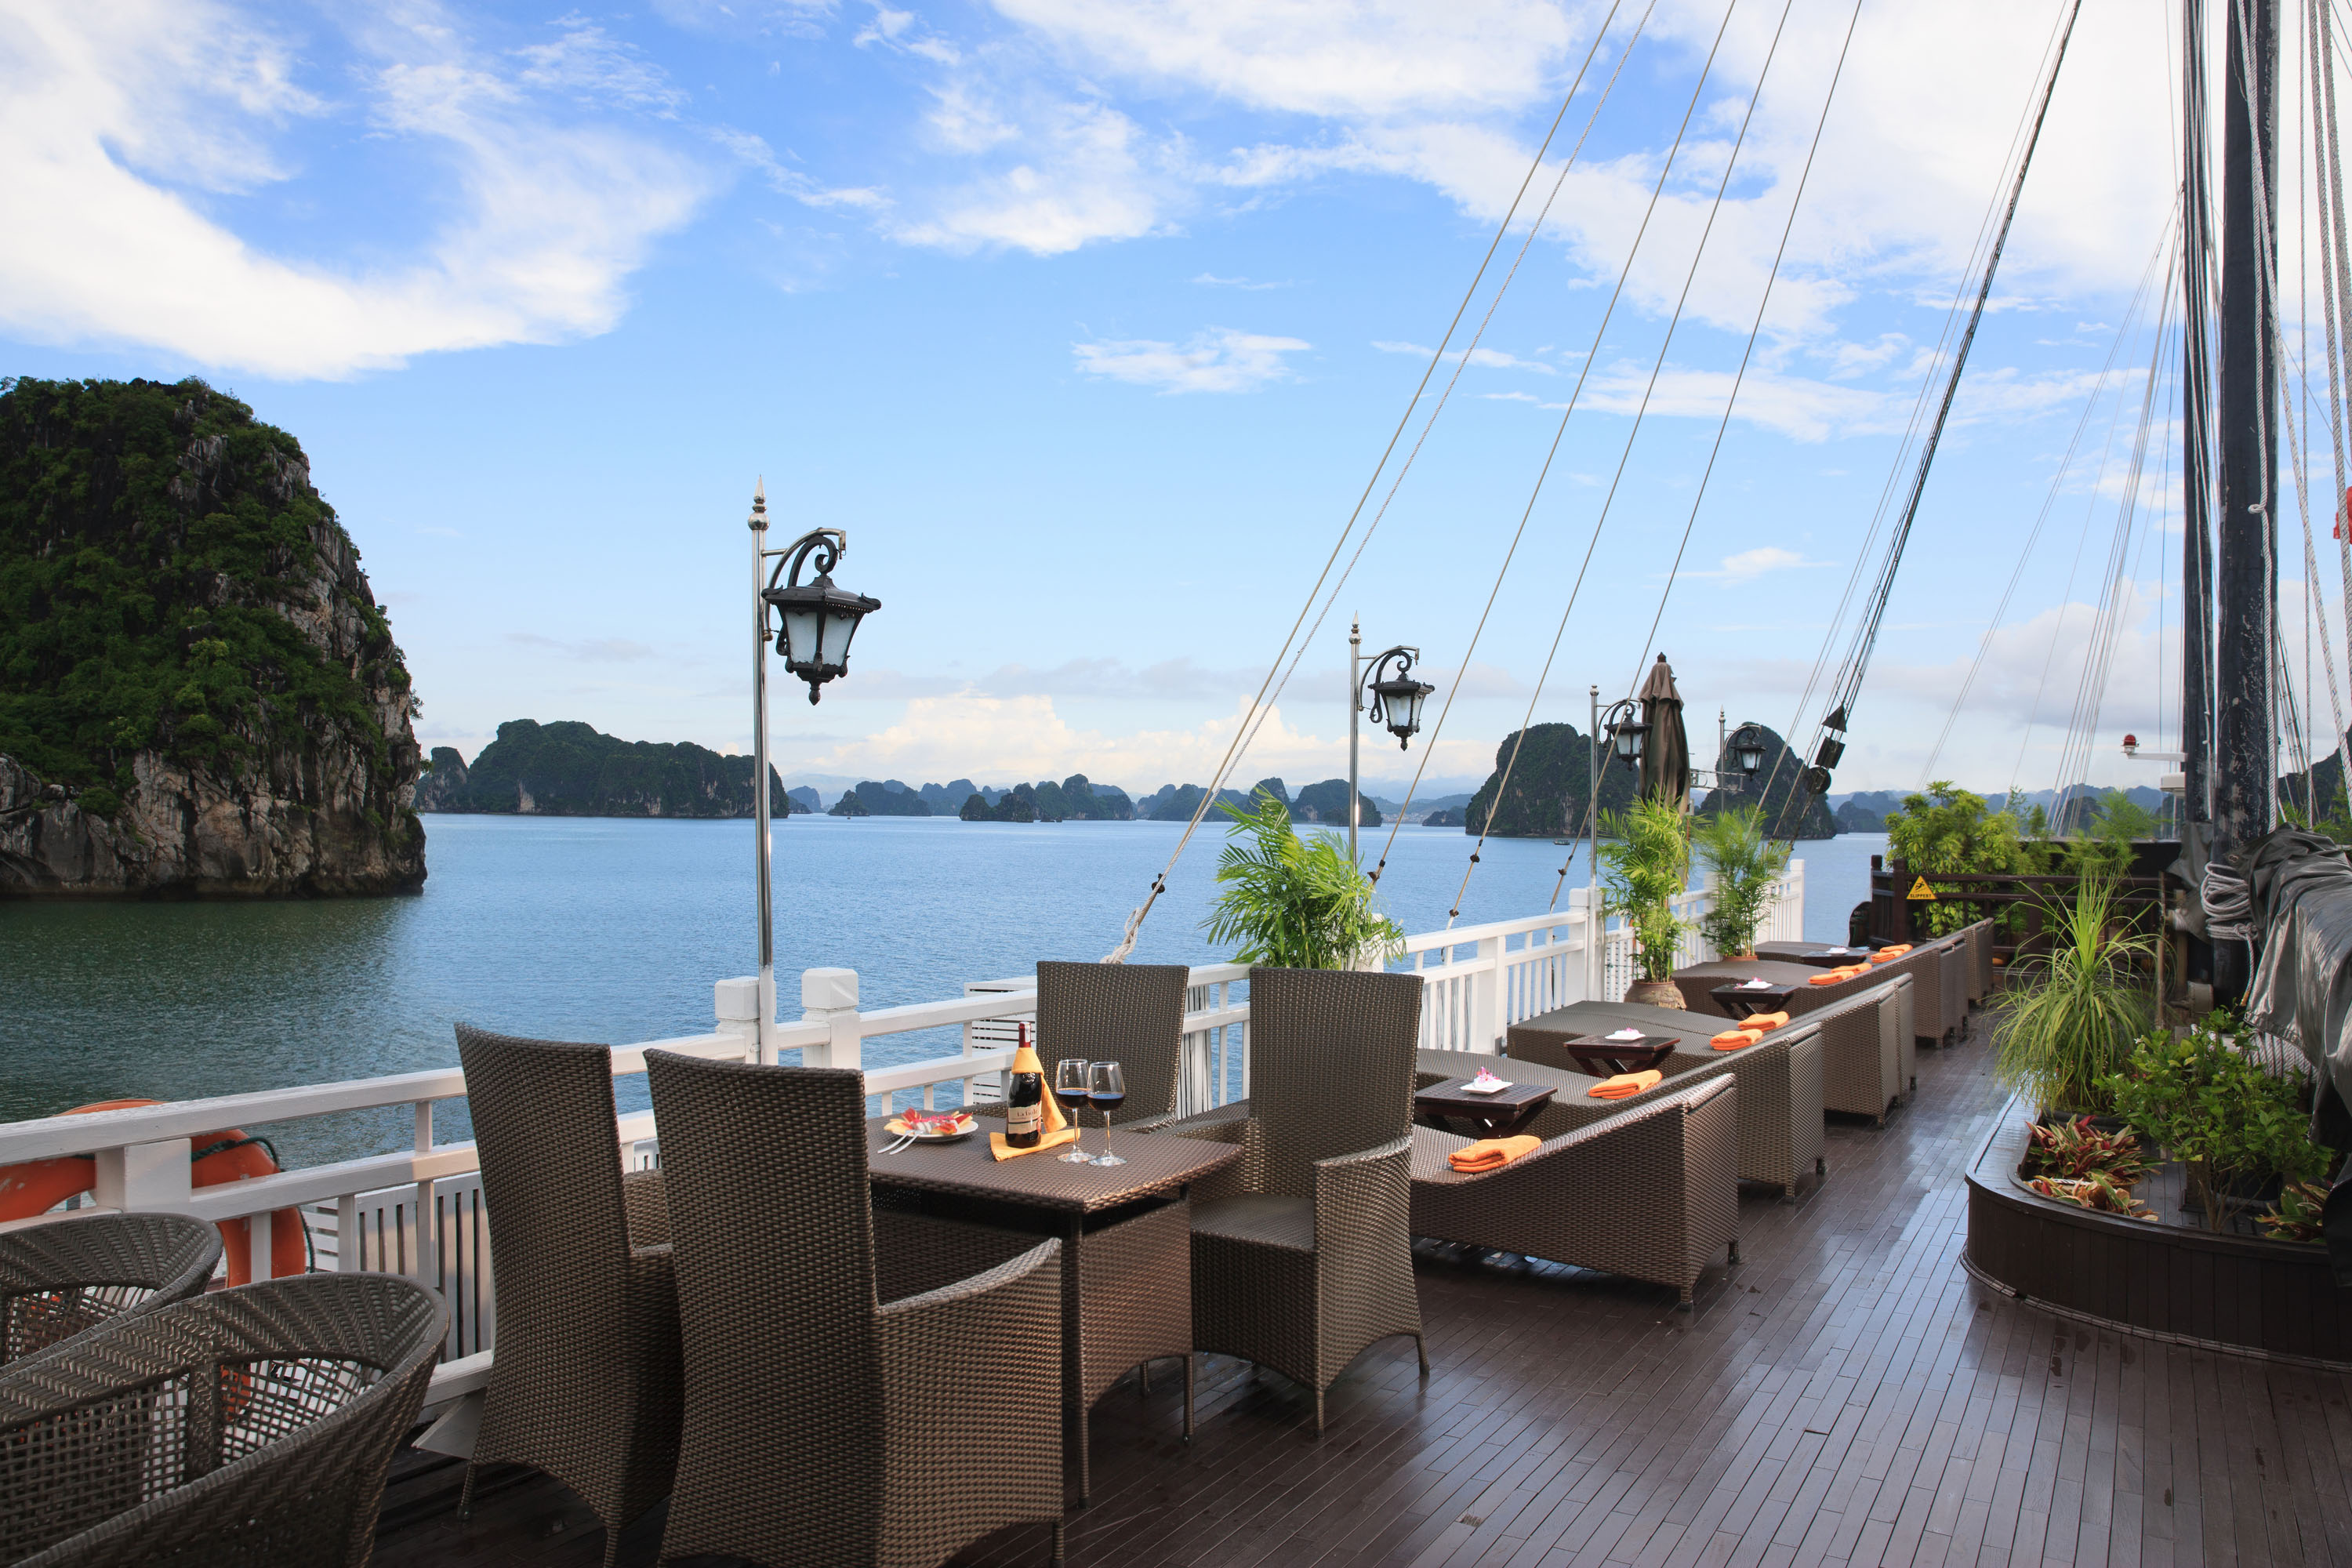 Halong Victory Star Cruise 3 days 2 nights